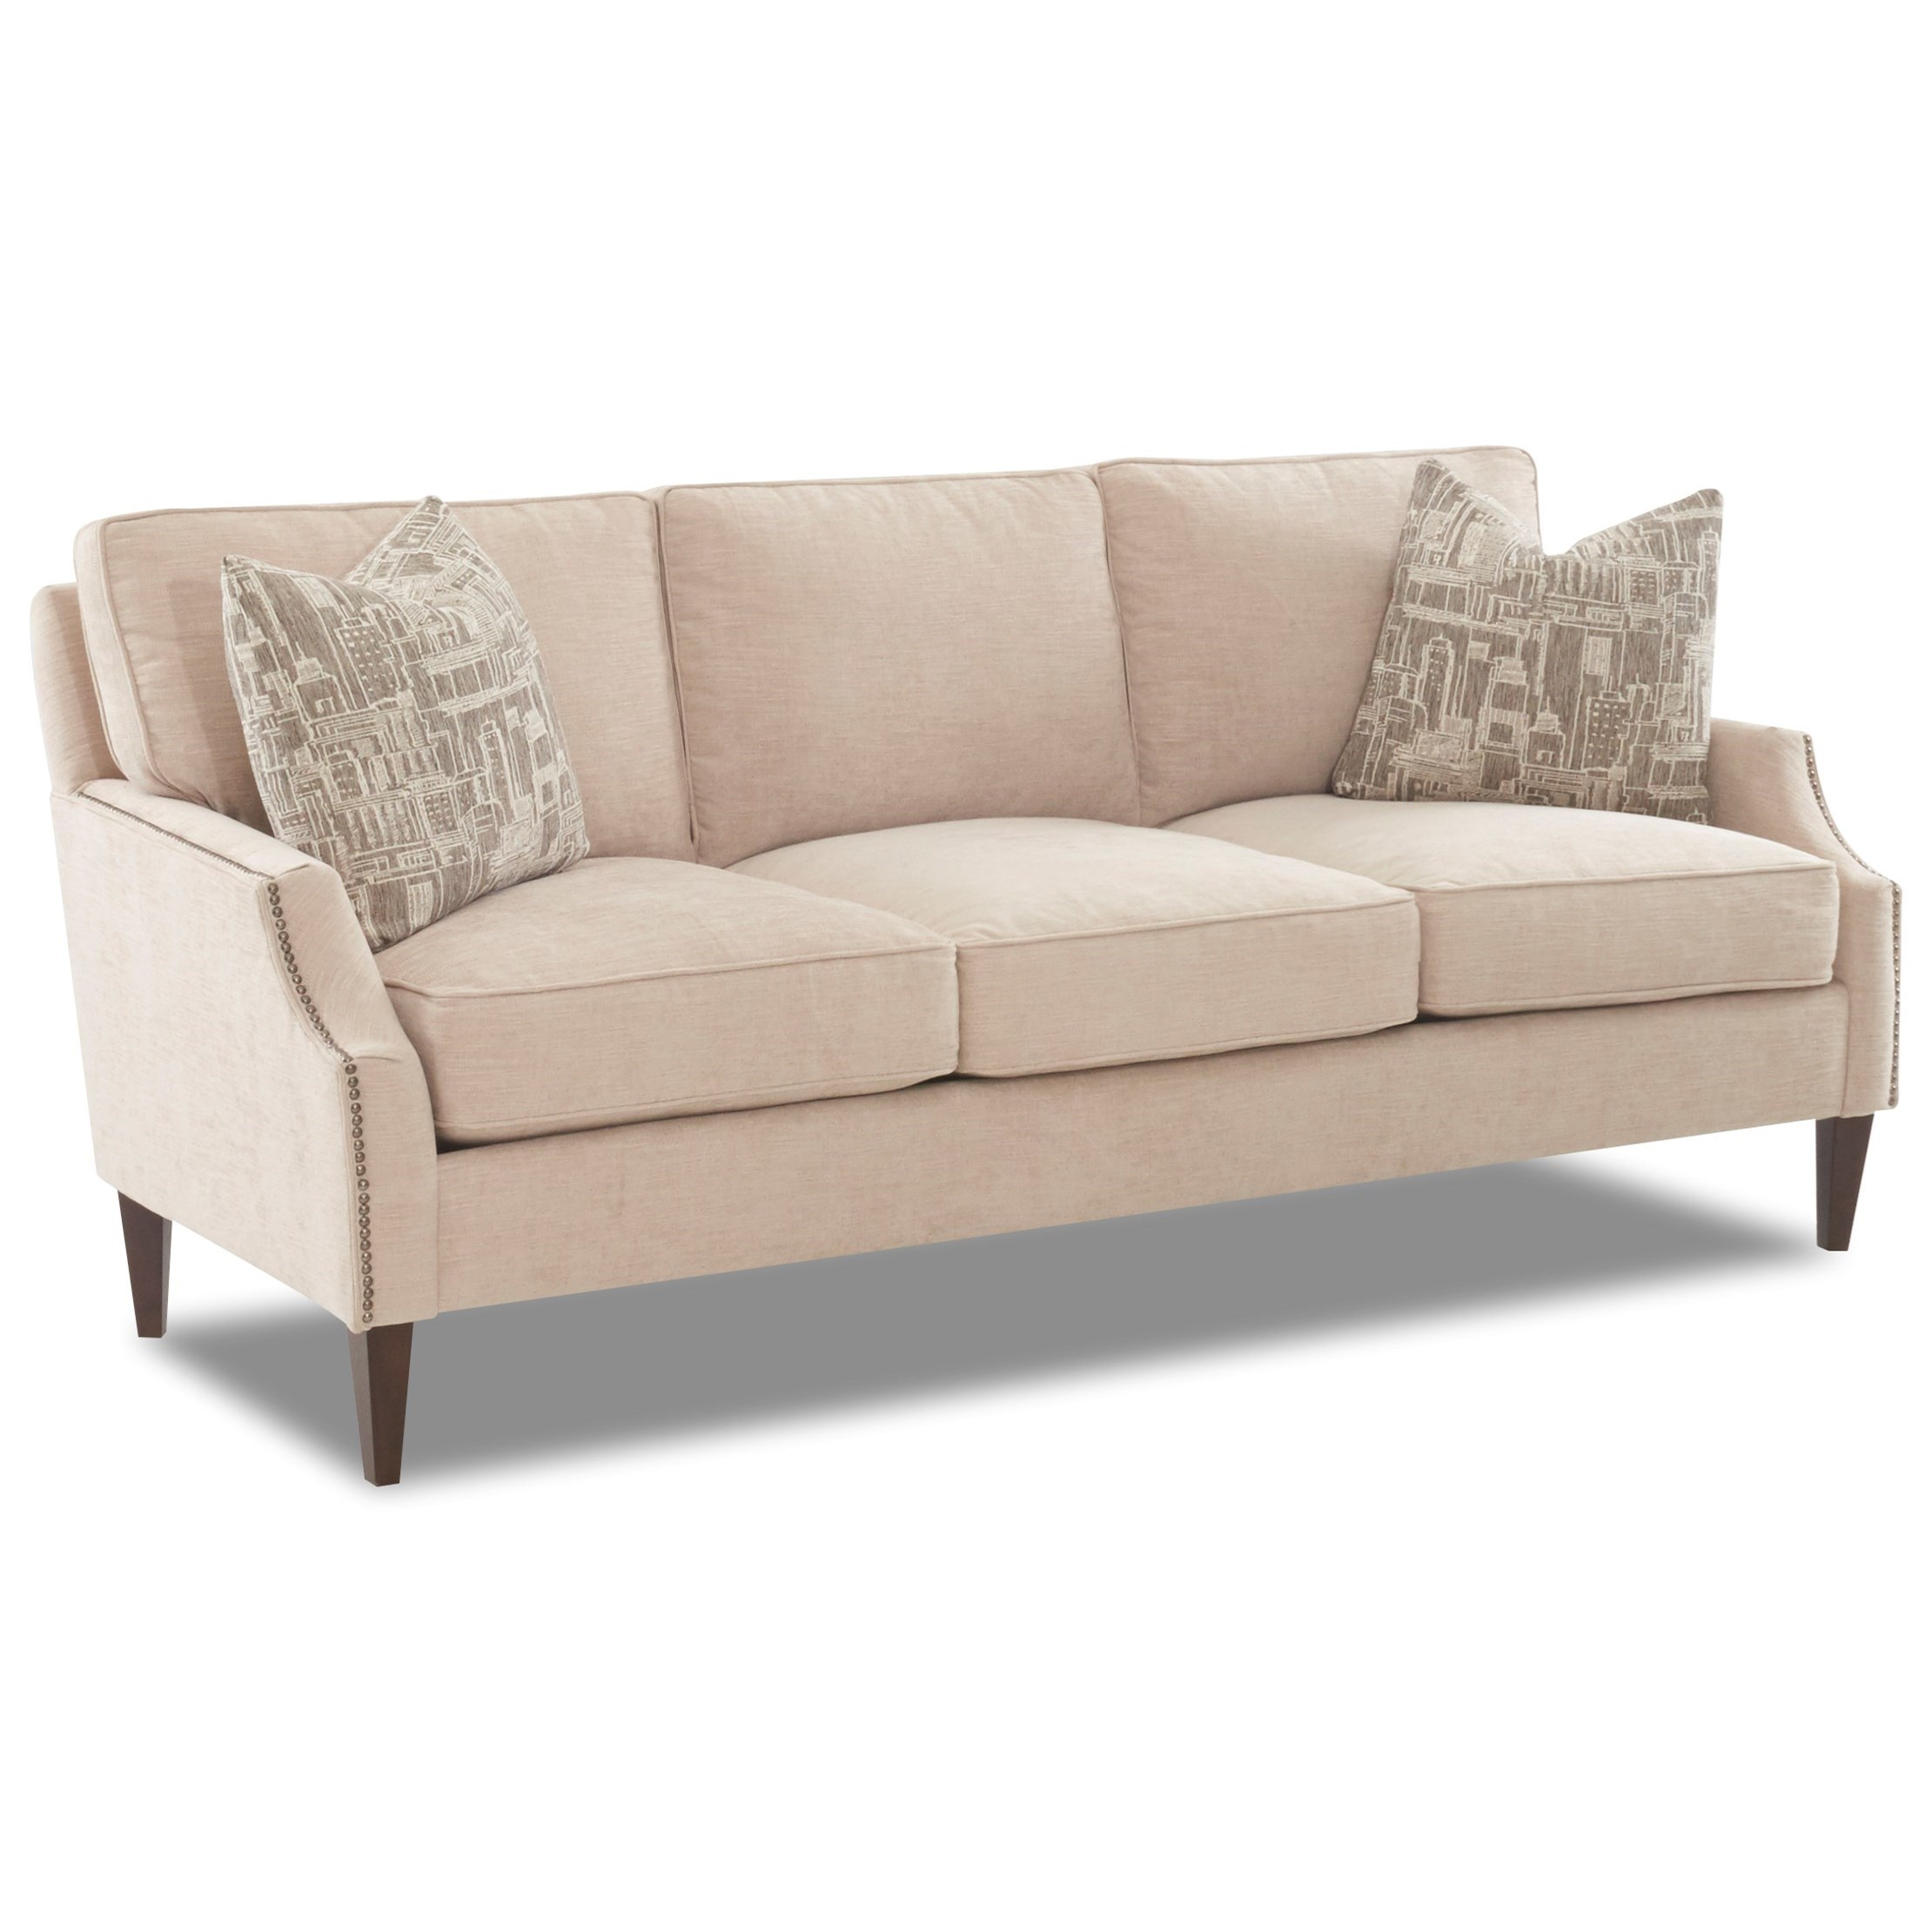 Grammercy Sofa by Klaussner at Johnny Janosik